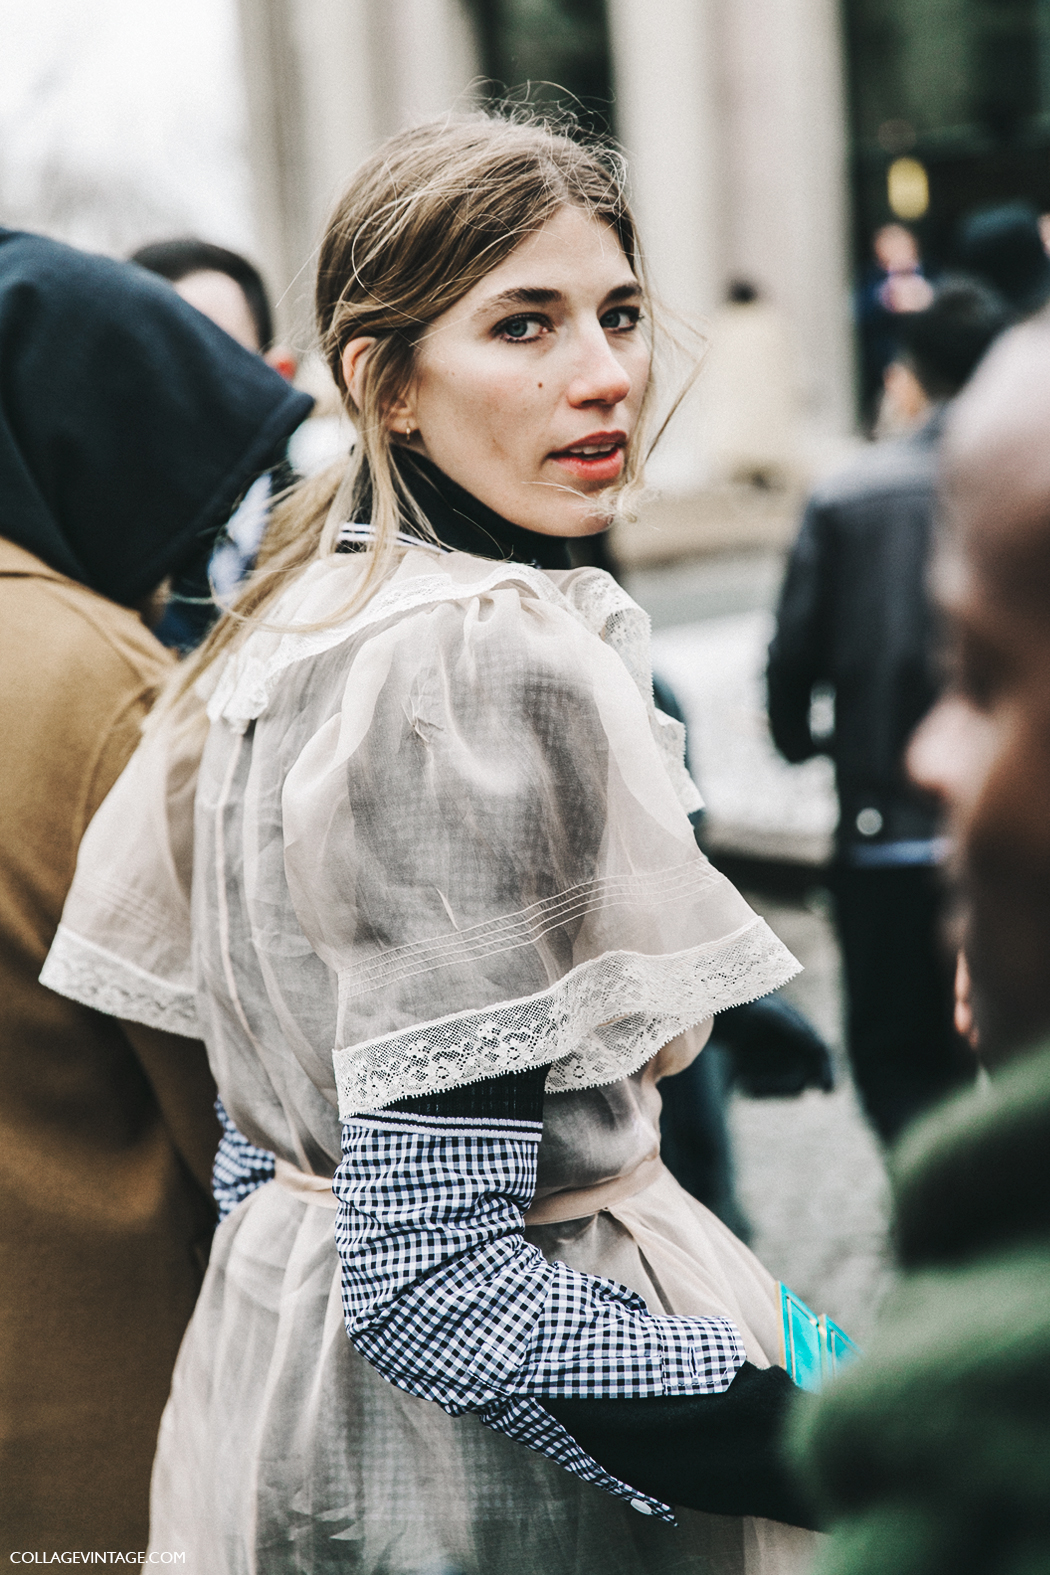 PFW-Paris_Fashion_Week_Fall_2016-Street_Style-Collage_Vintage-Miu_Miu-Veronika_Heilbrunner-Justin_Oshea-1